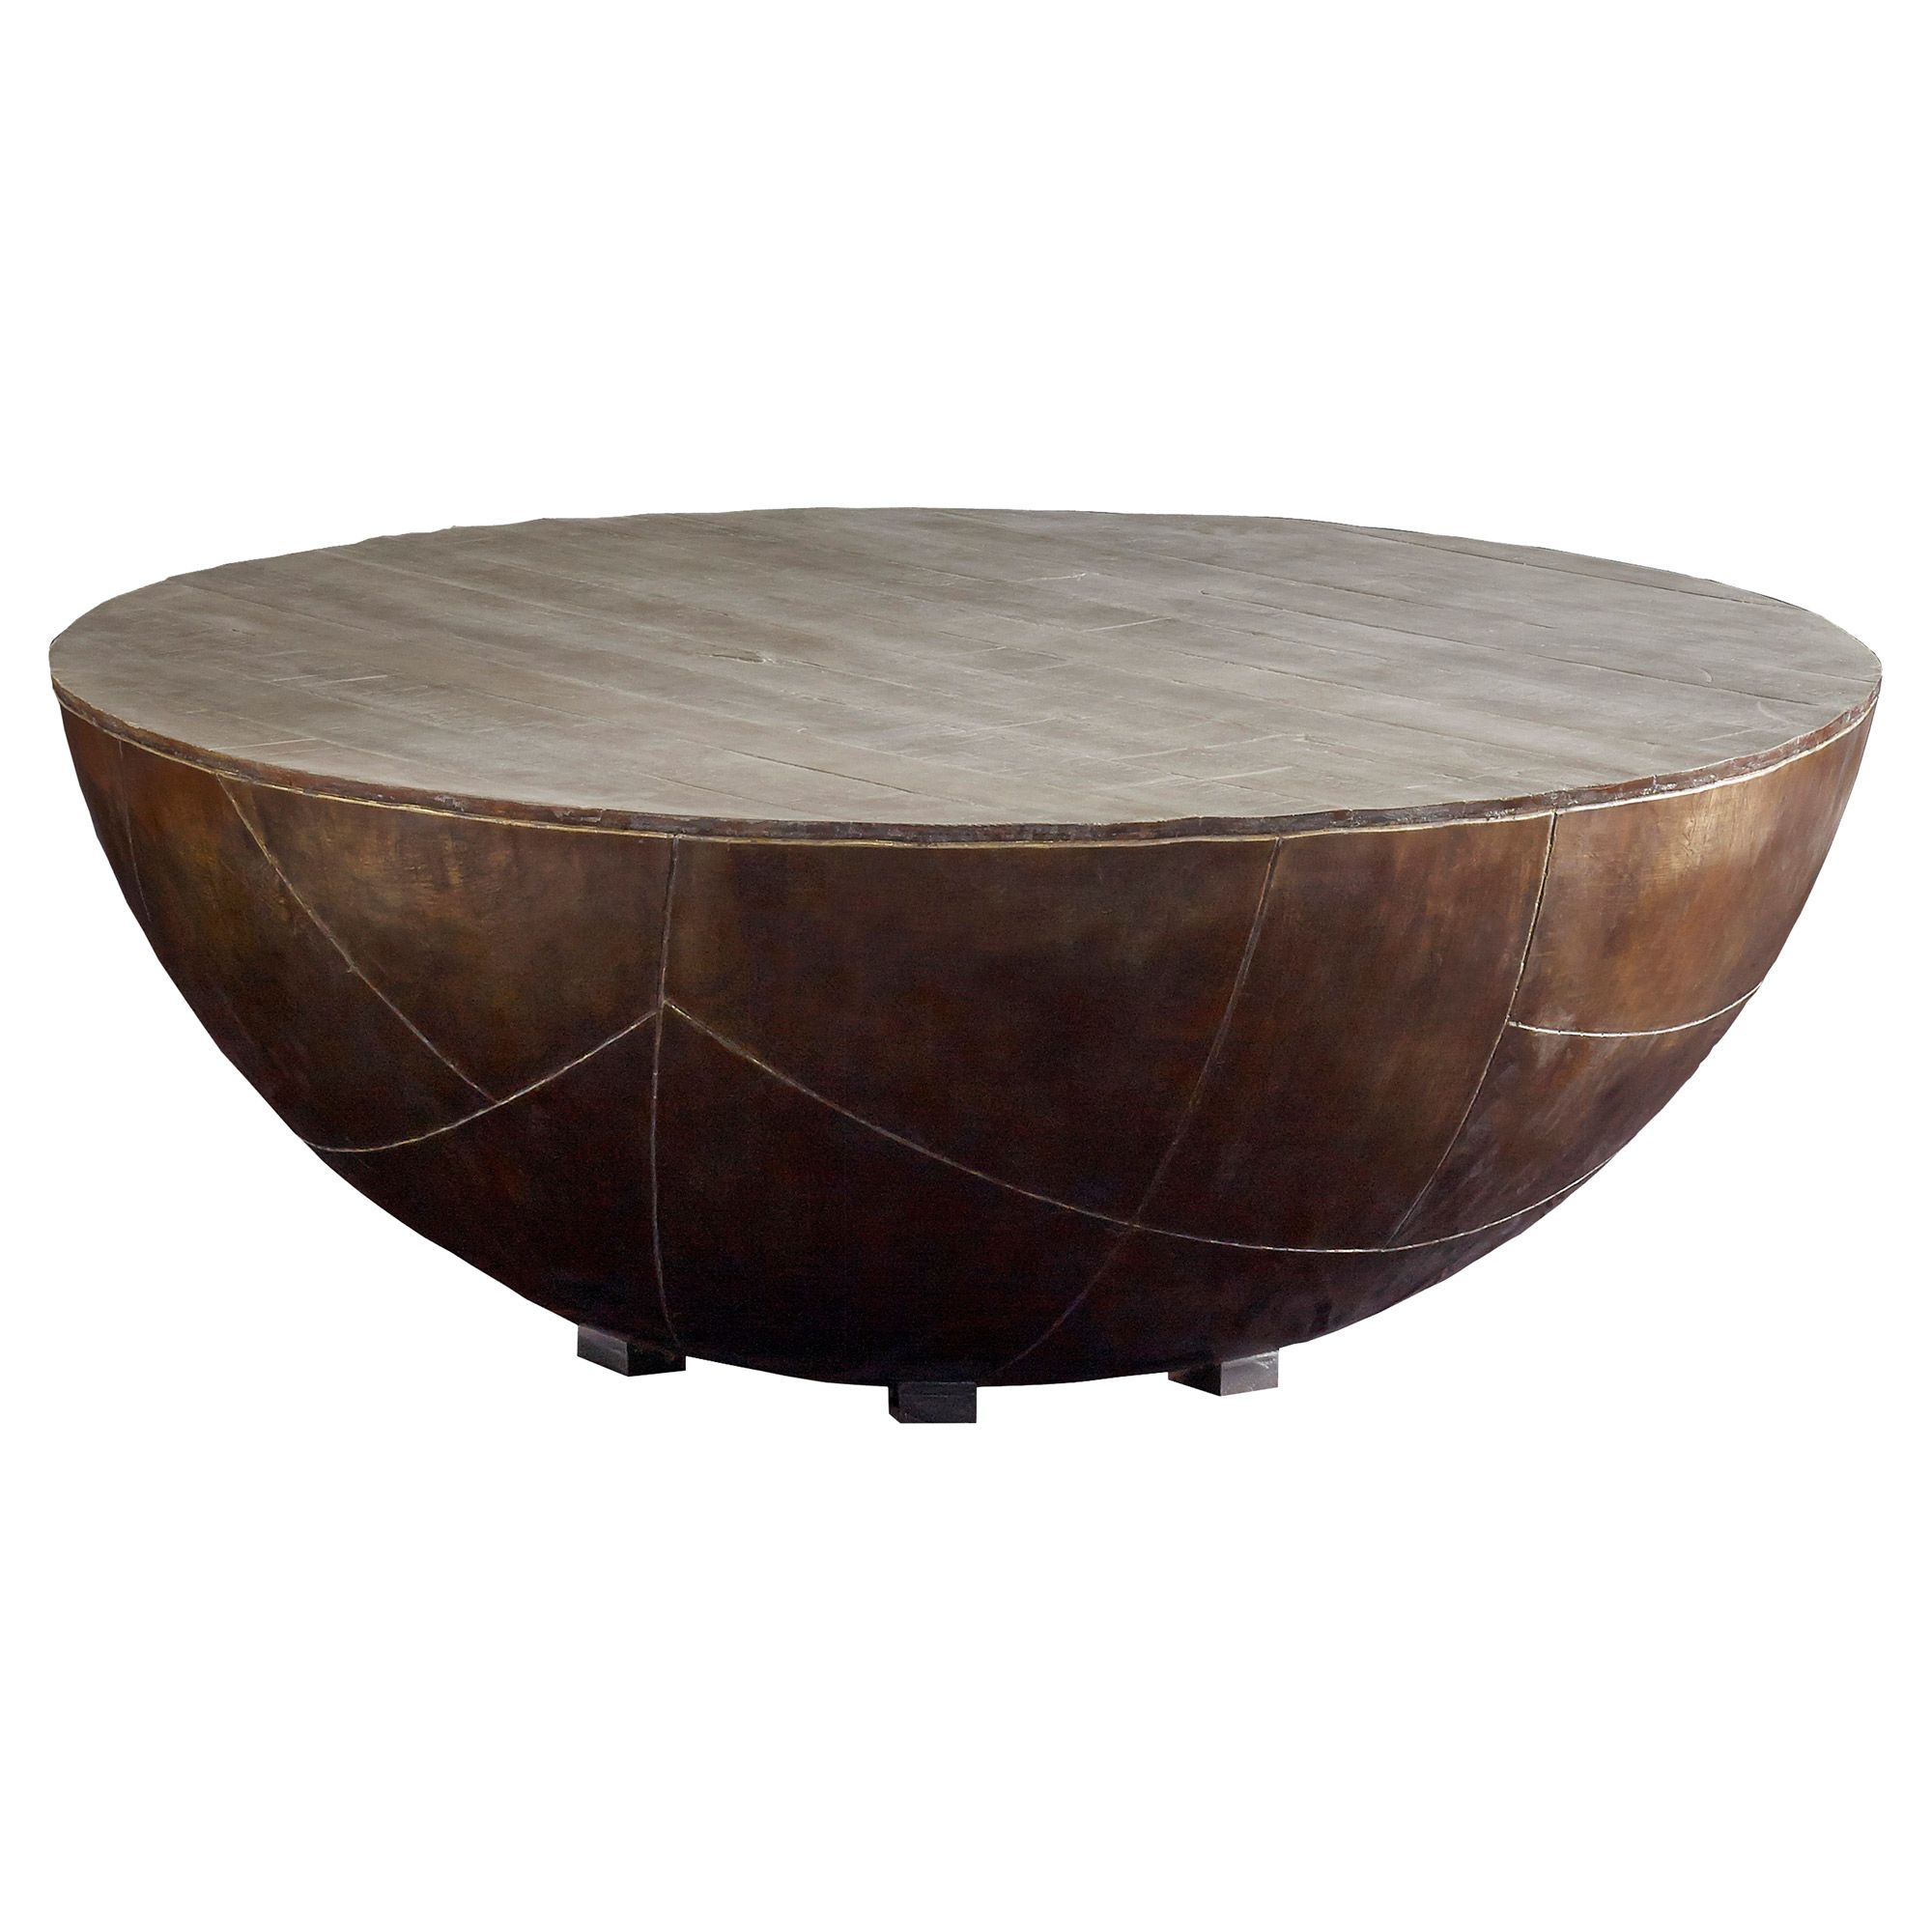 Donny Industrial Loft Antique Brass Wood Top Round Round Coffee Table In 2021 Drum Coffee Table Coffee Table Brass Drum Coffee Table [ 2000 x 2000 Pixel ]